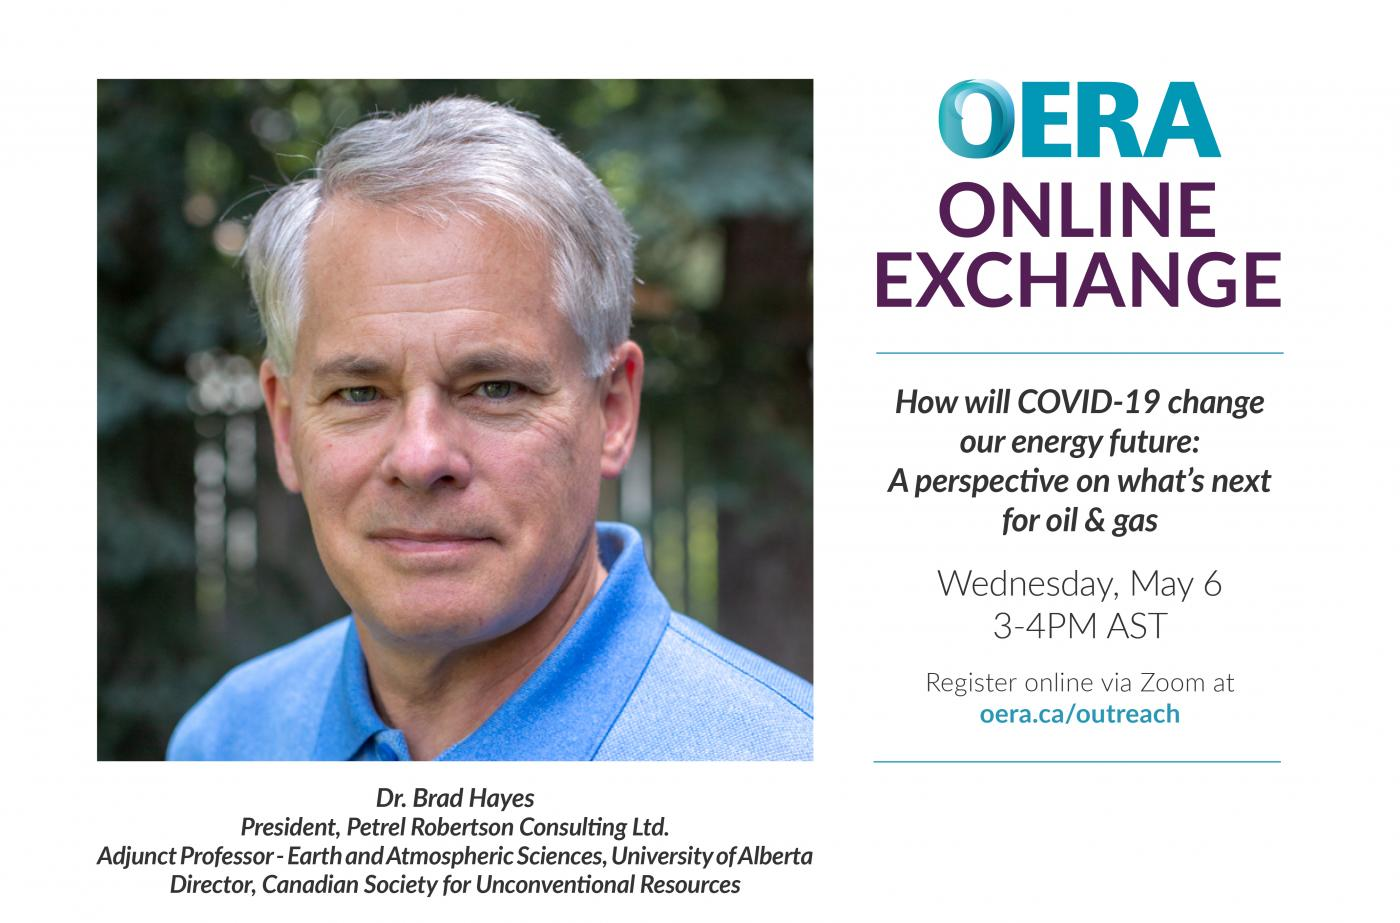 OERA Online Exchange May 6 2020